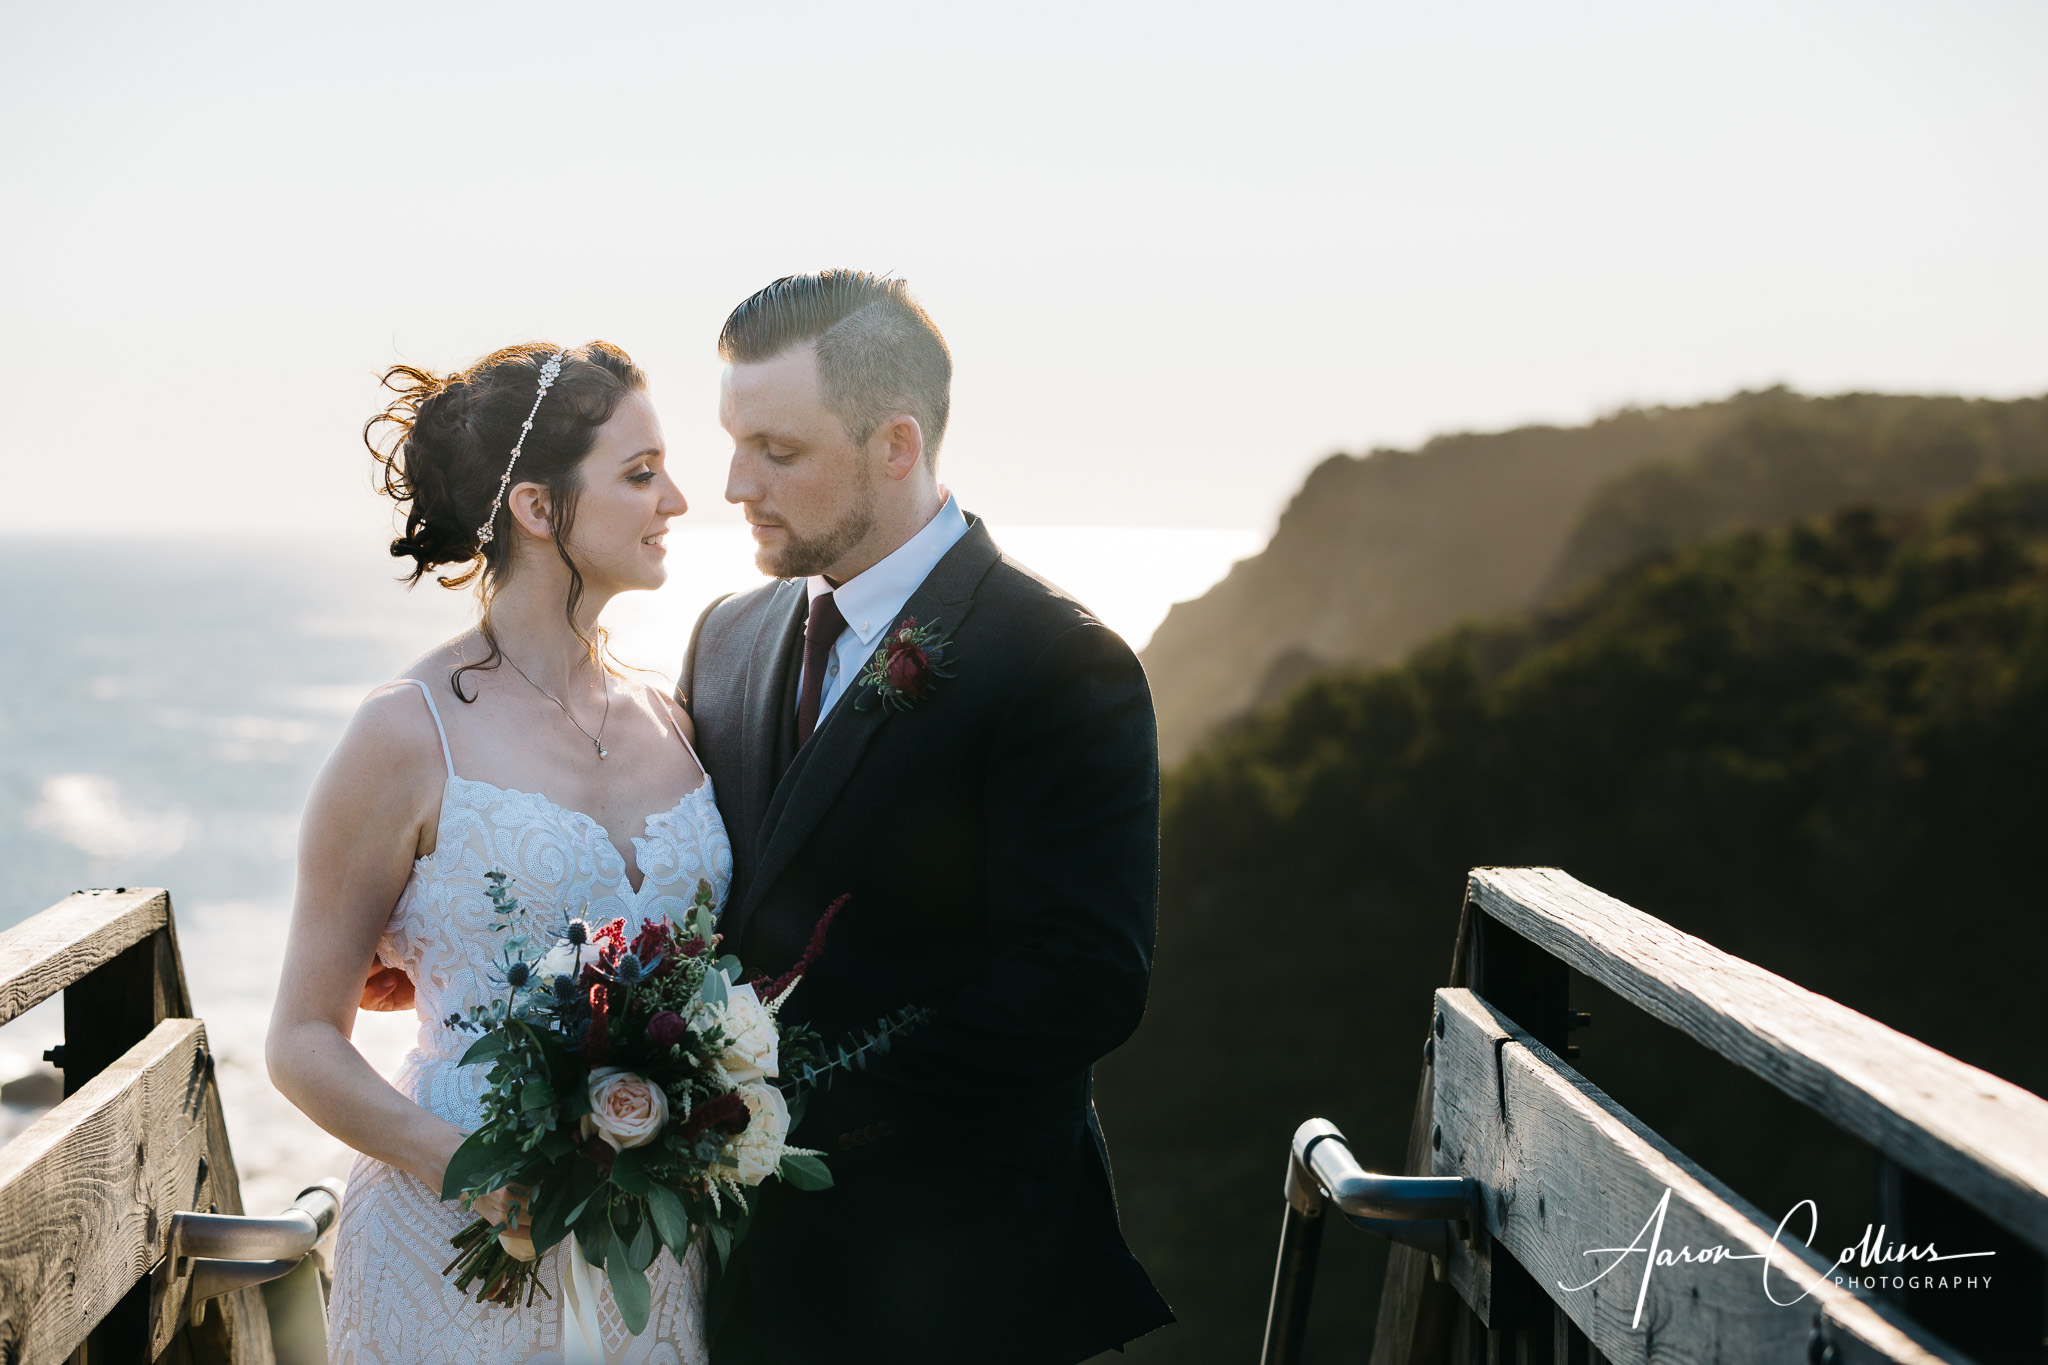 Meg and Andrew Wedding, captured on Sep 29, 2018; at Block Island Maritime Institute, in New Shoreham, RI, by Aaron Collins Photography.